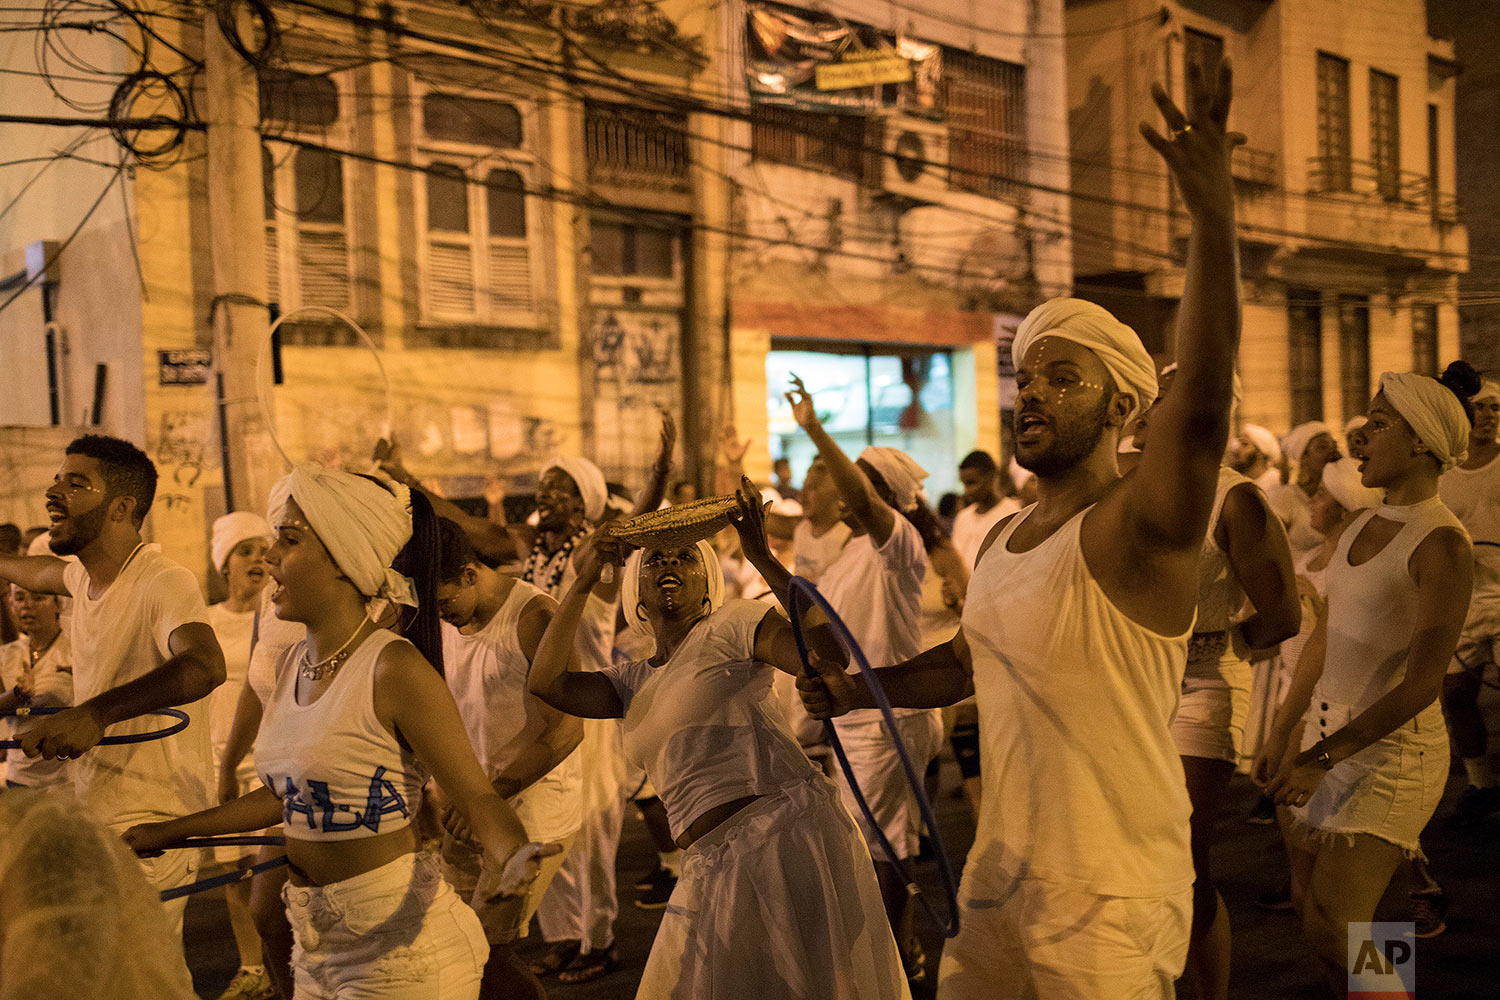 """In this Jan. 22, 2018 photo, members of the Paraiso do Tuiuti samba school rehearse their dances and songs that make reference to Brazil's history with slavery, in the streets of Rio de Janeiro, Brazil. """"It's not just racism against blacks or whites,"""" said Dandara Silva, a hairdresser and dancer in the group. """"There is a form of social slavery and we are fighting against that."""" (AP Photo/Leo Correa)"""